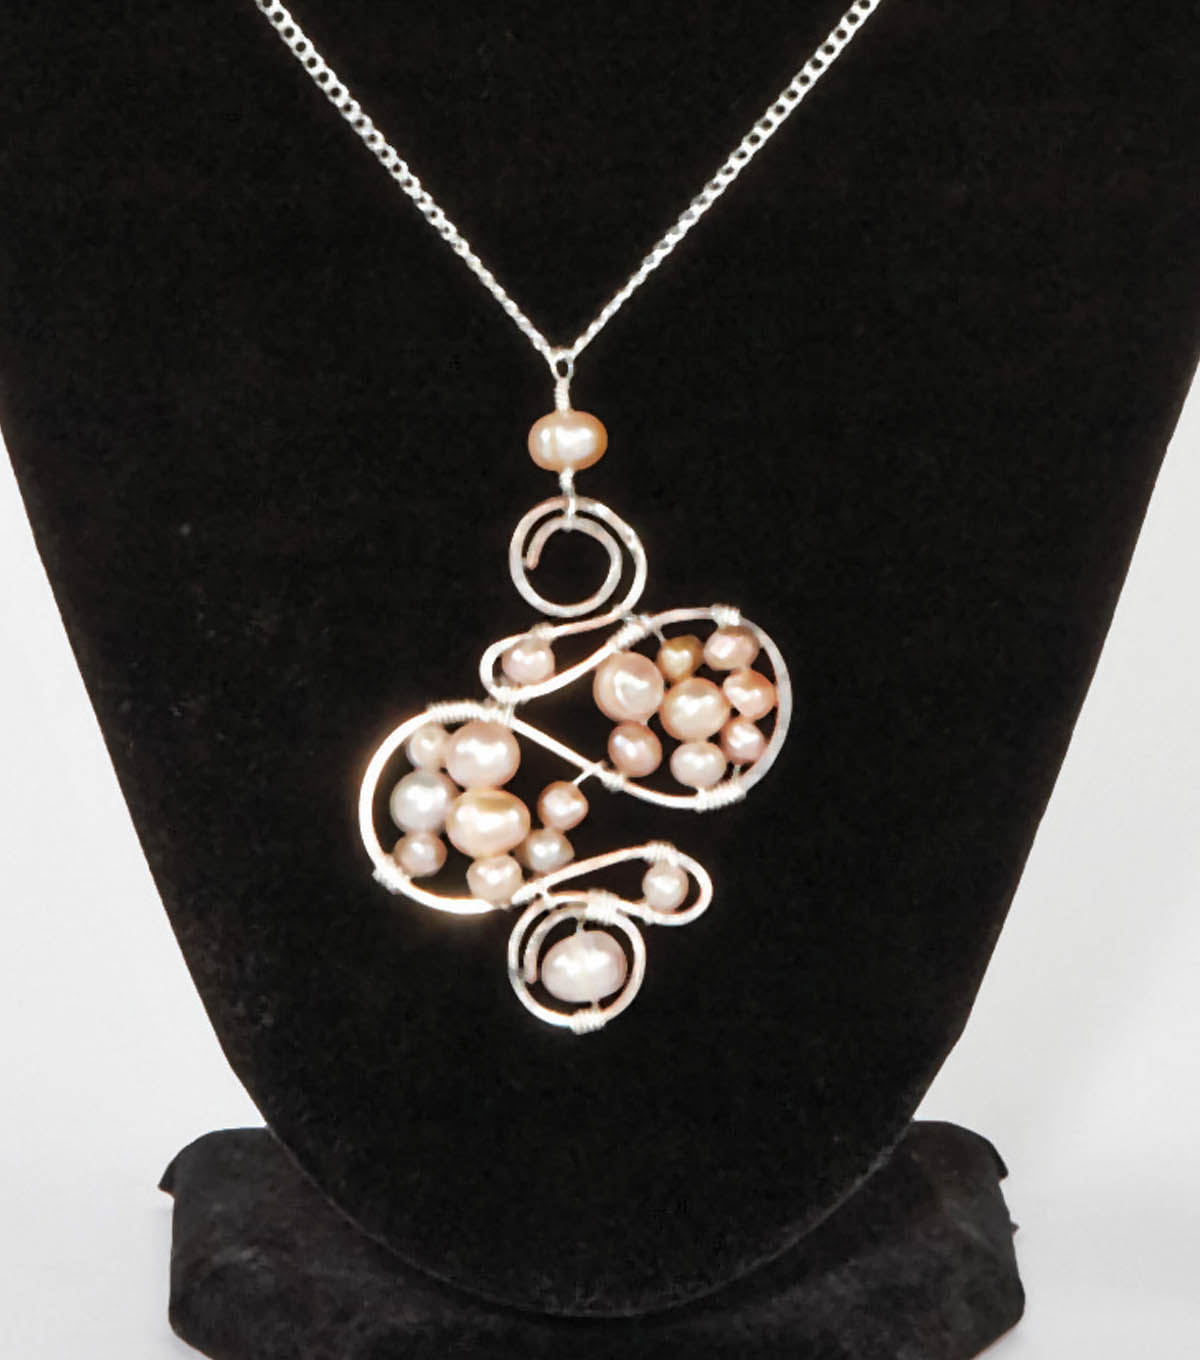 Pearls and Swirls Necklace